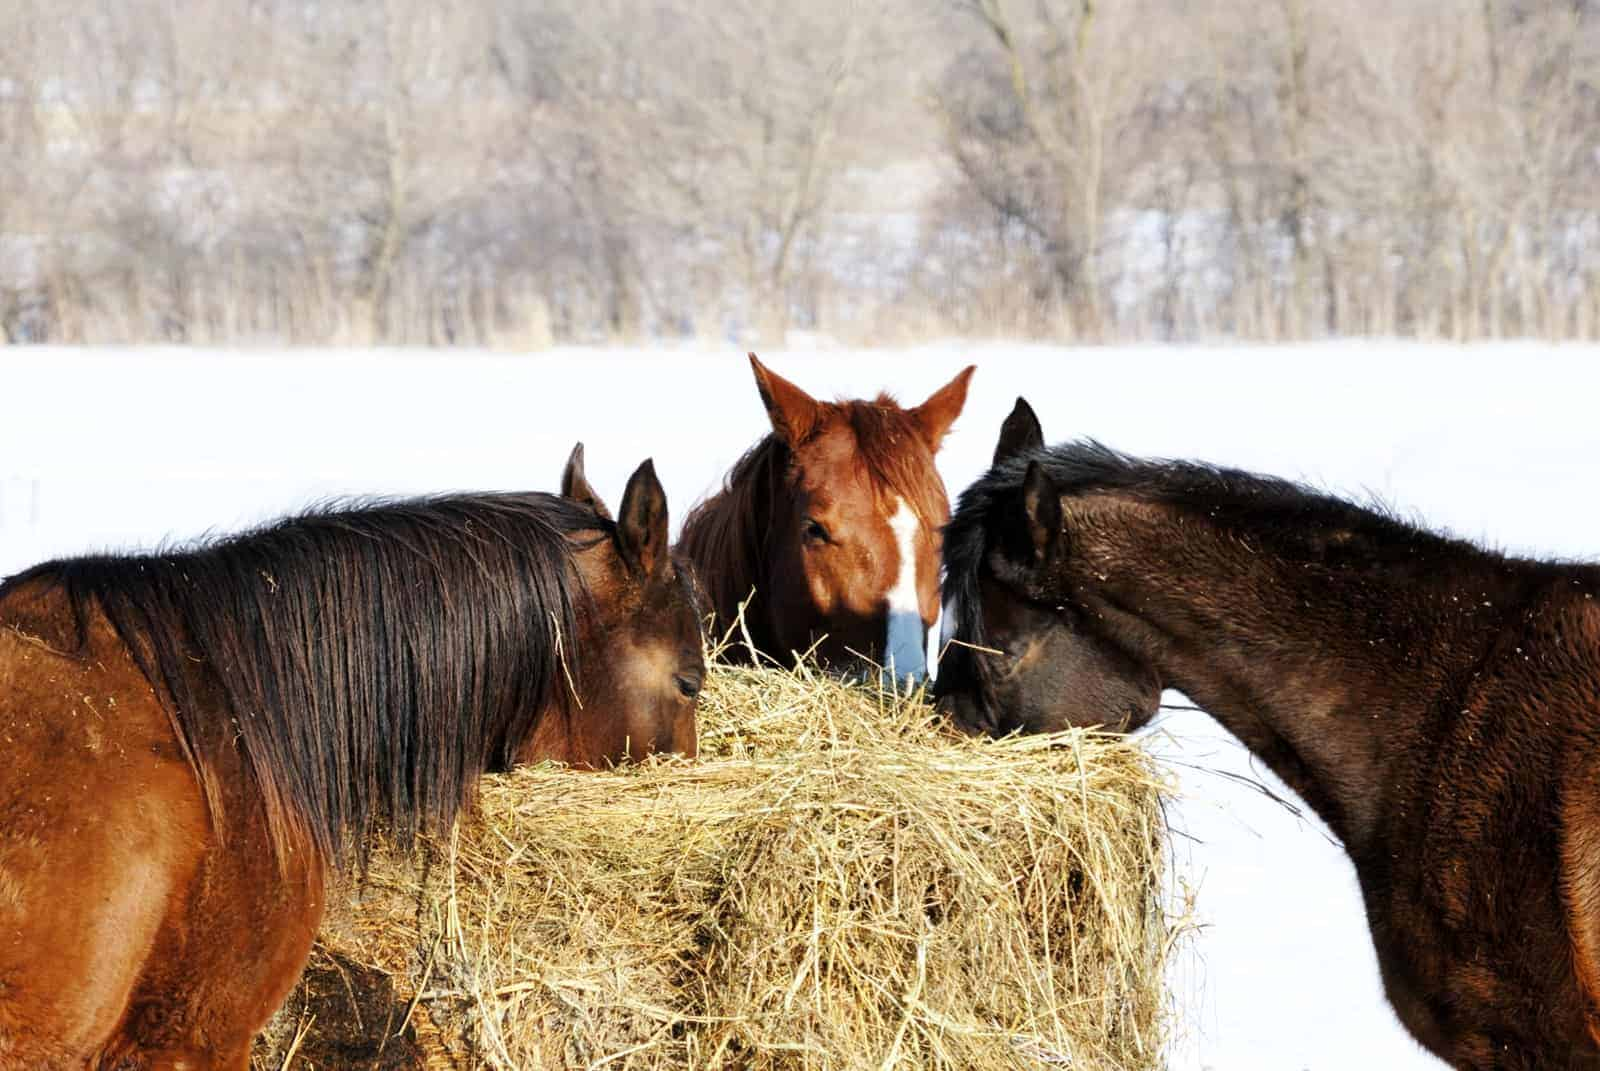 Horses Require Extra Attention When Temperatures Plummet